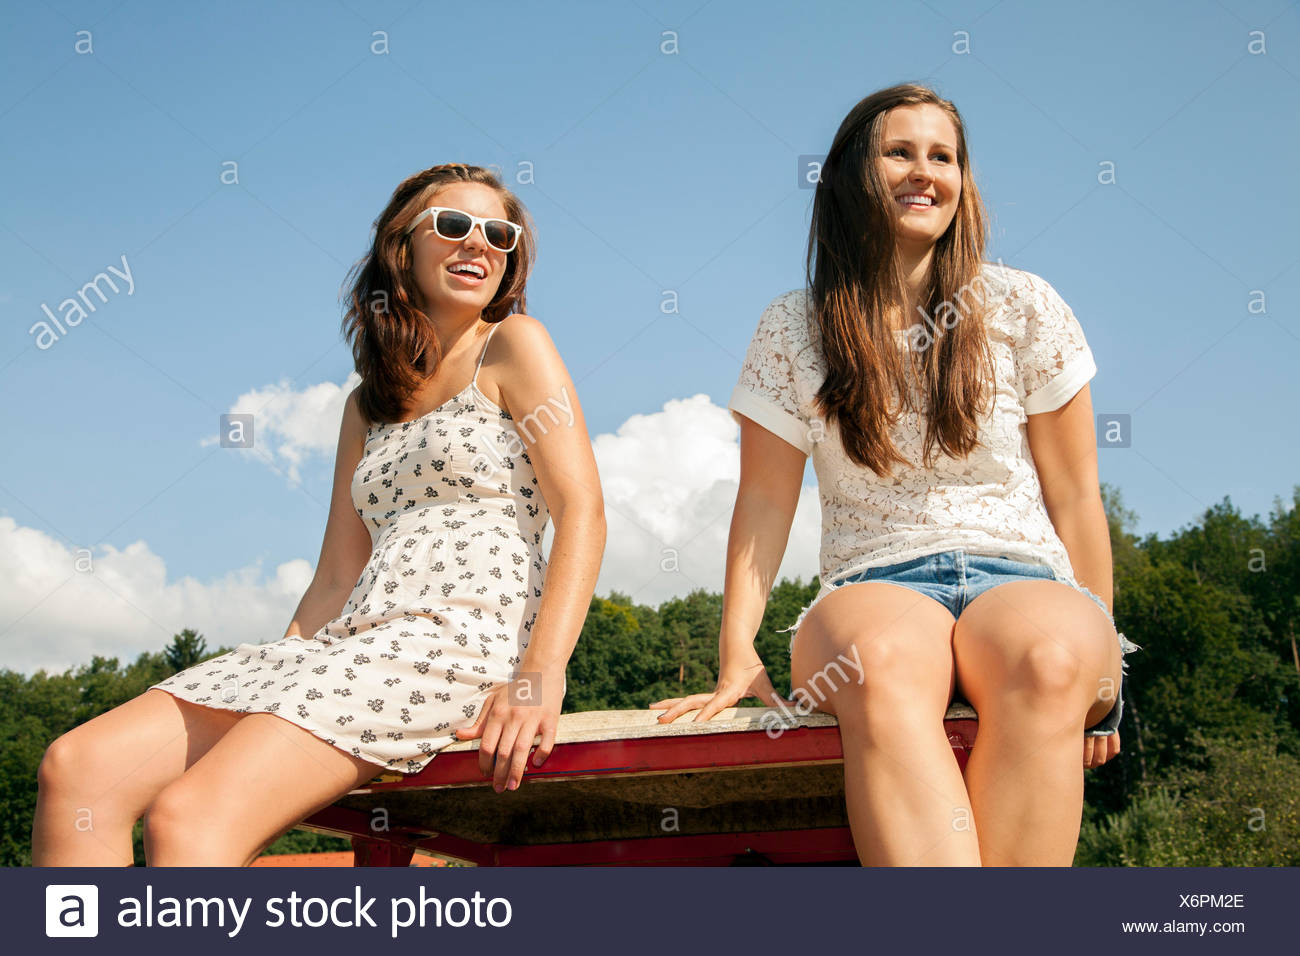 Two young women sitting in trailer - Stock Image